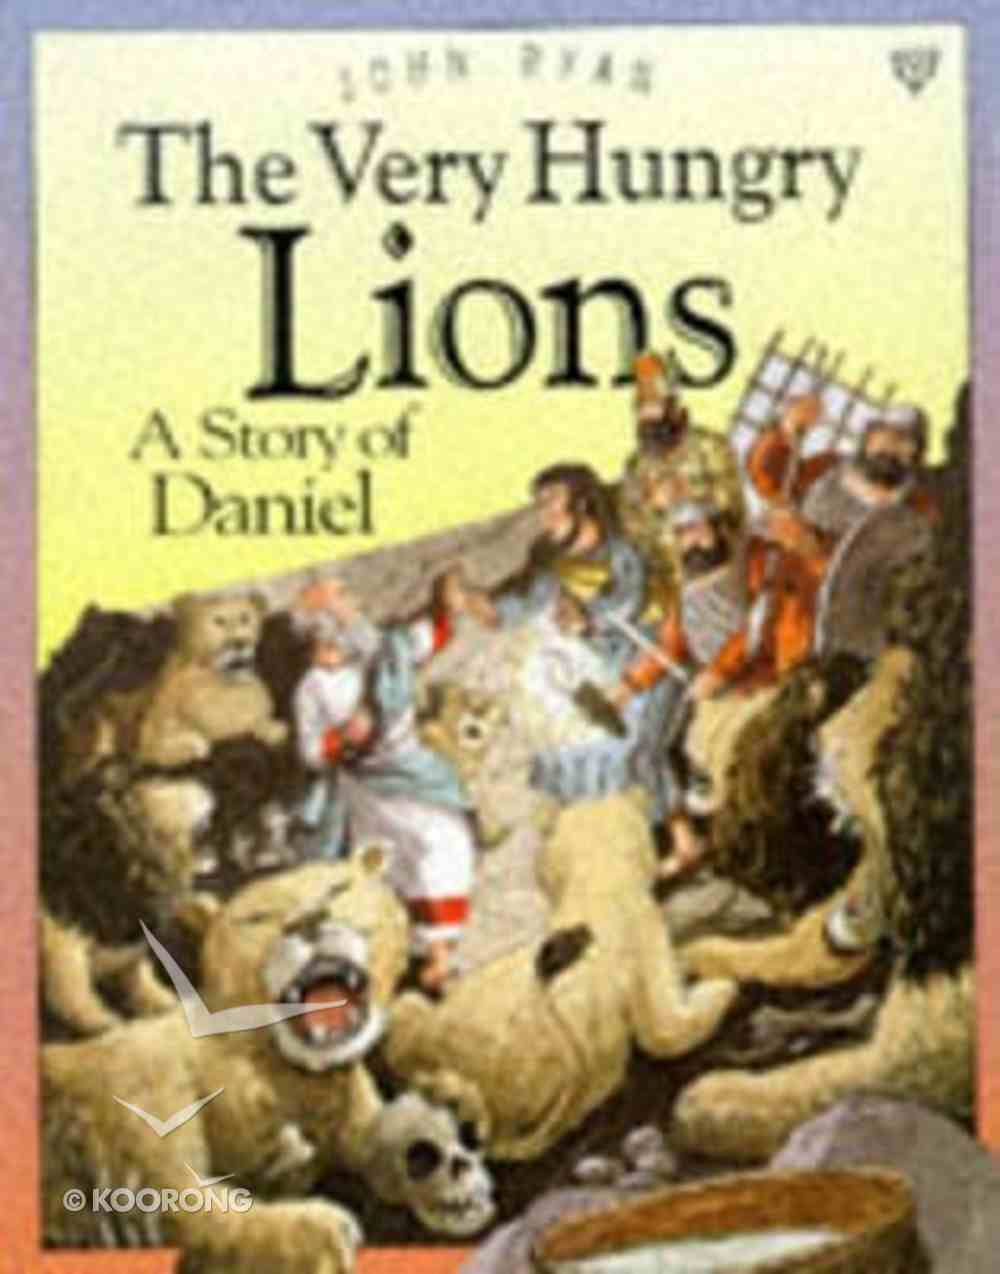 The Very Hungry Lions Paperback